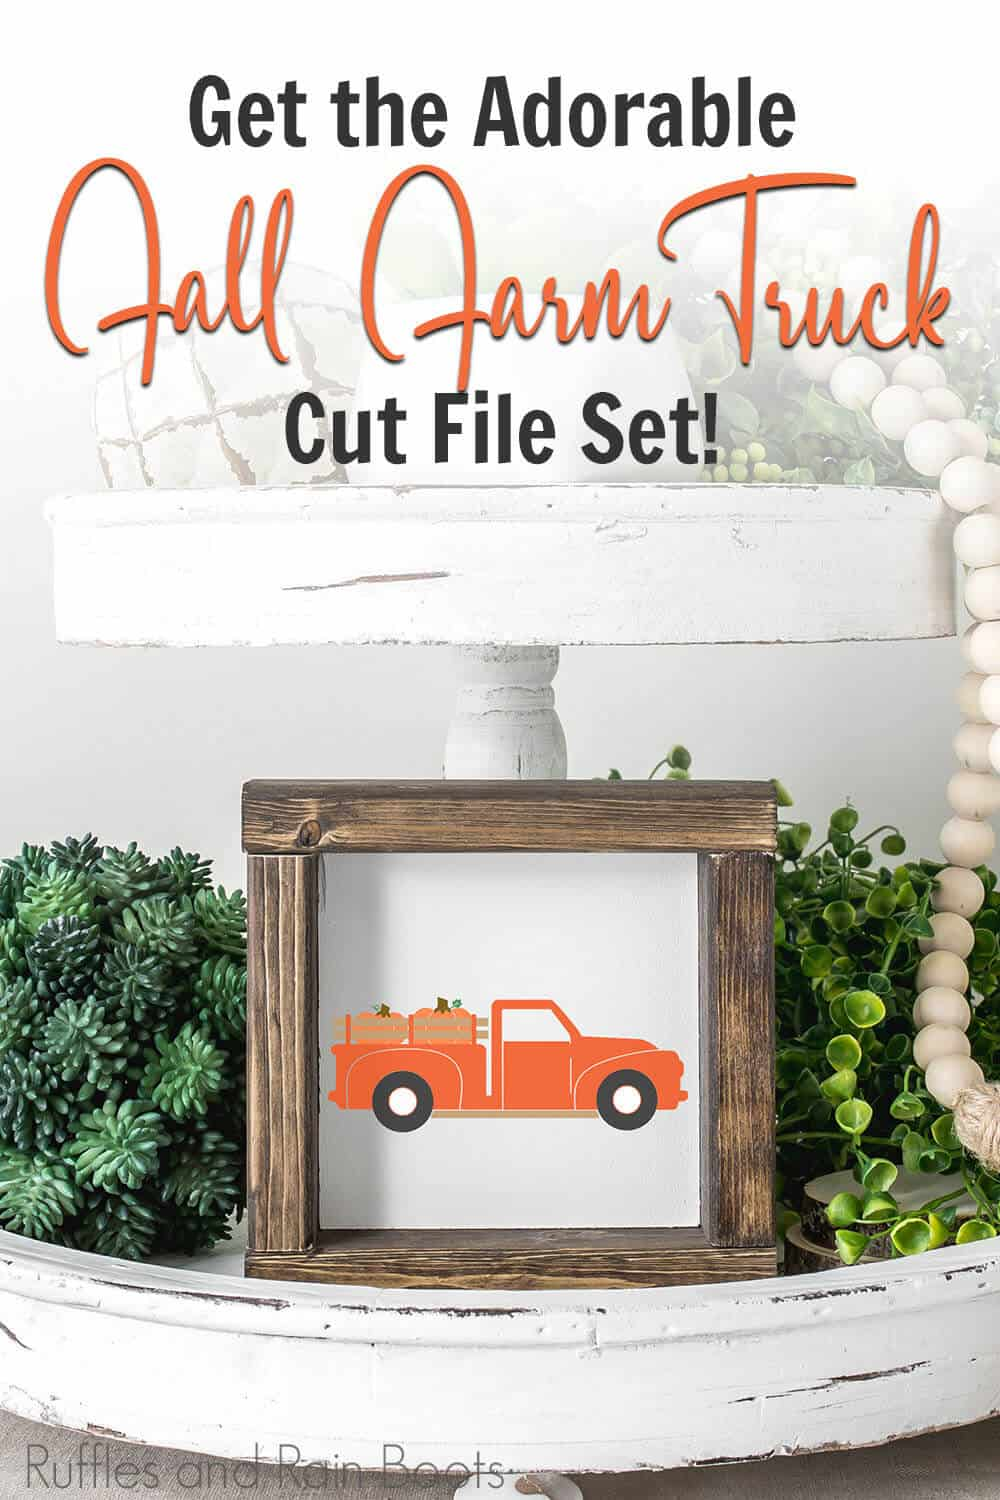 tiered tray with vintage truck for fall cut file on a wood block sign with text which reads get the adorable fall fall farm truck cut file set!